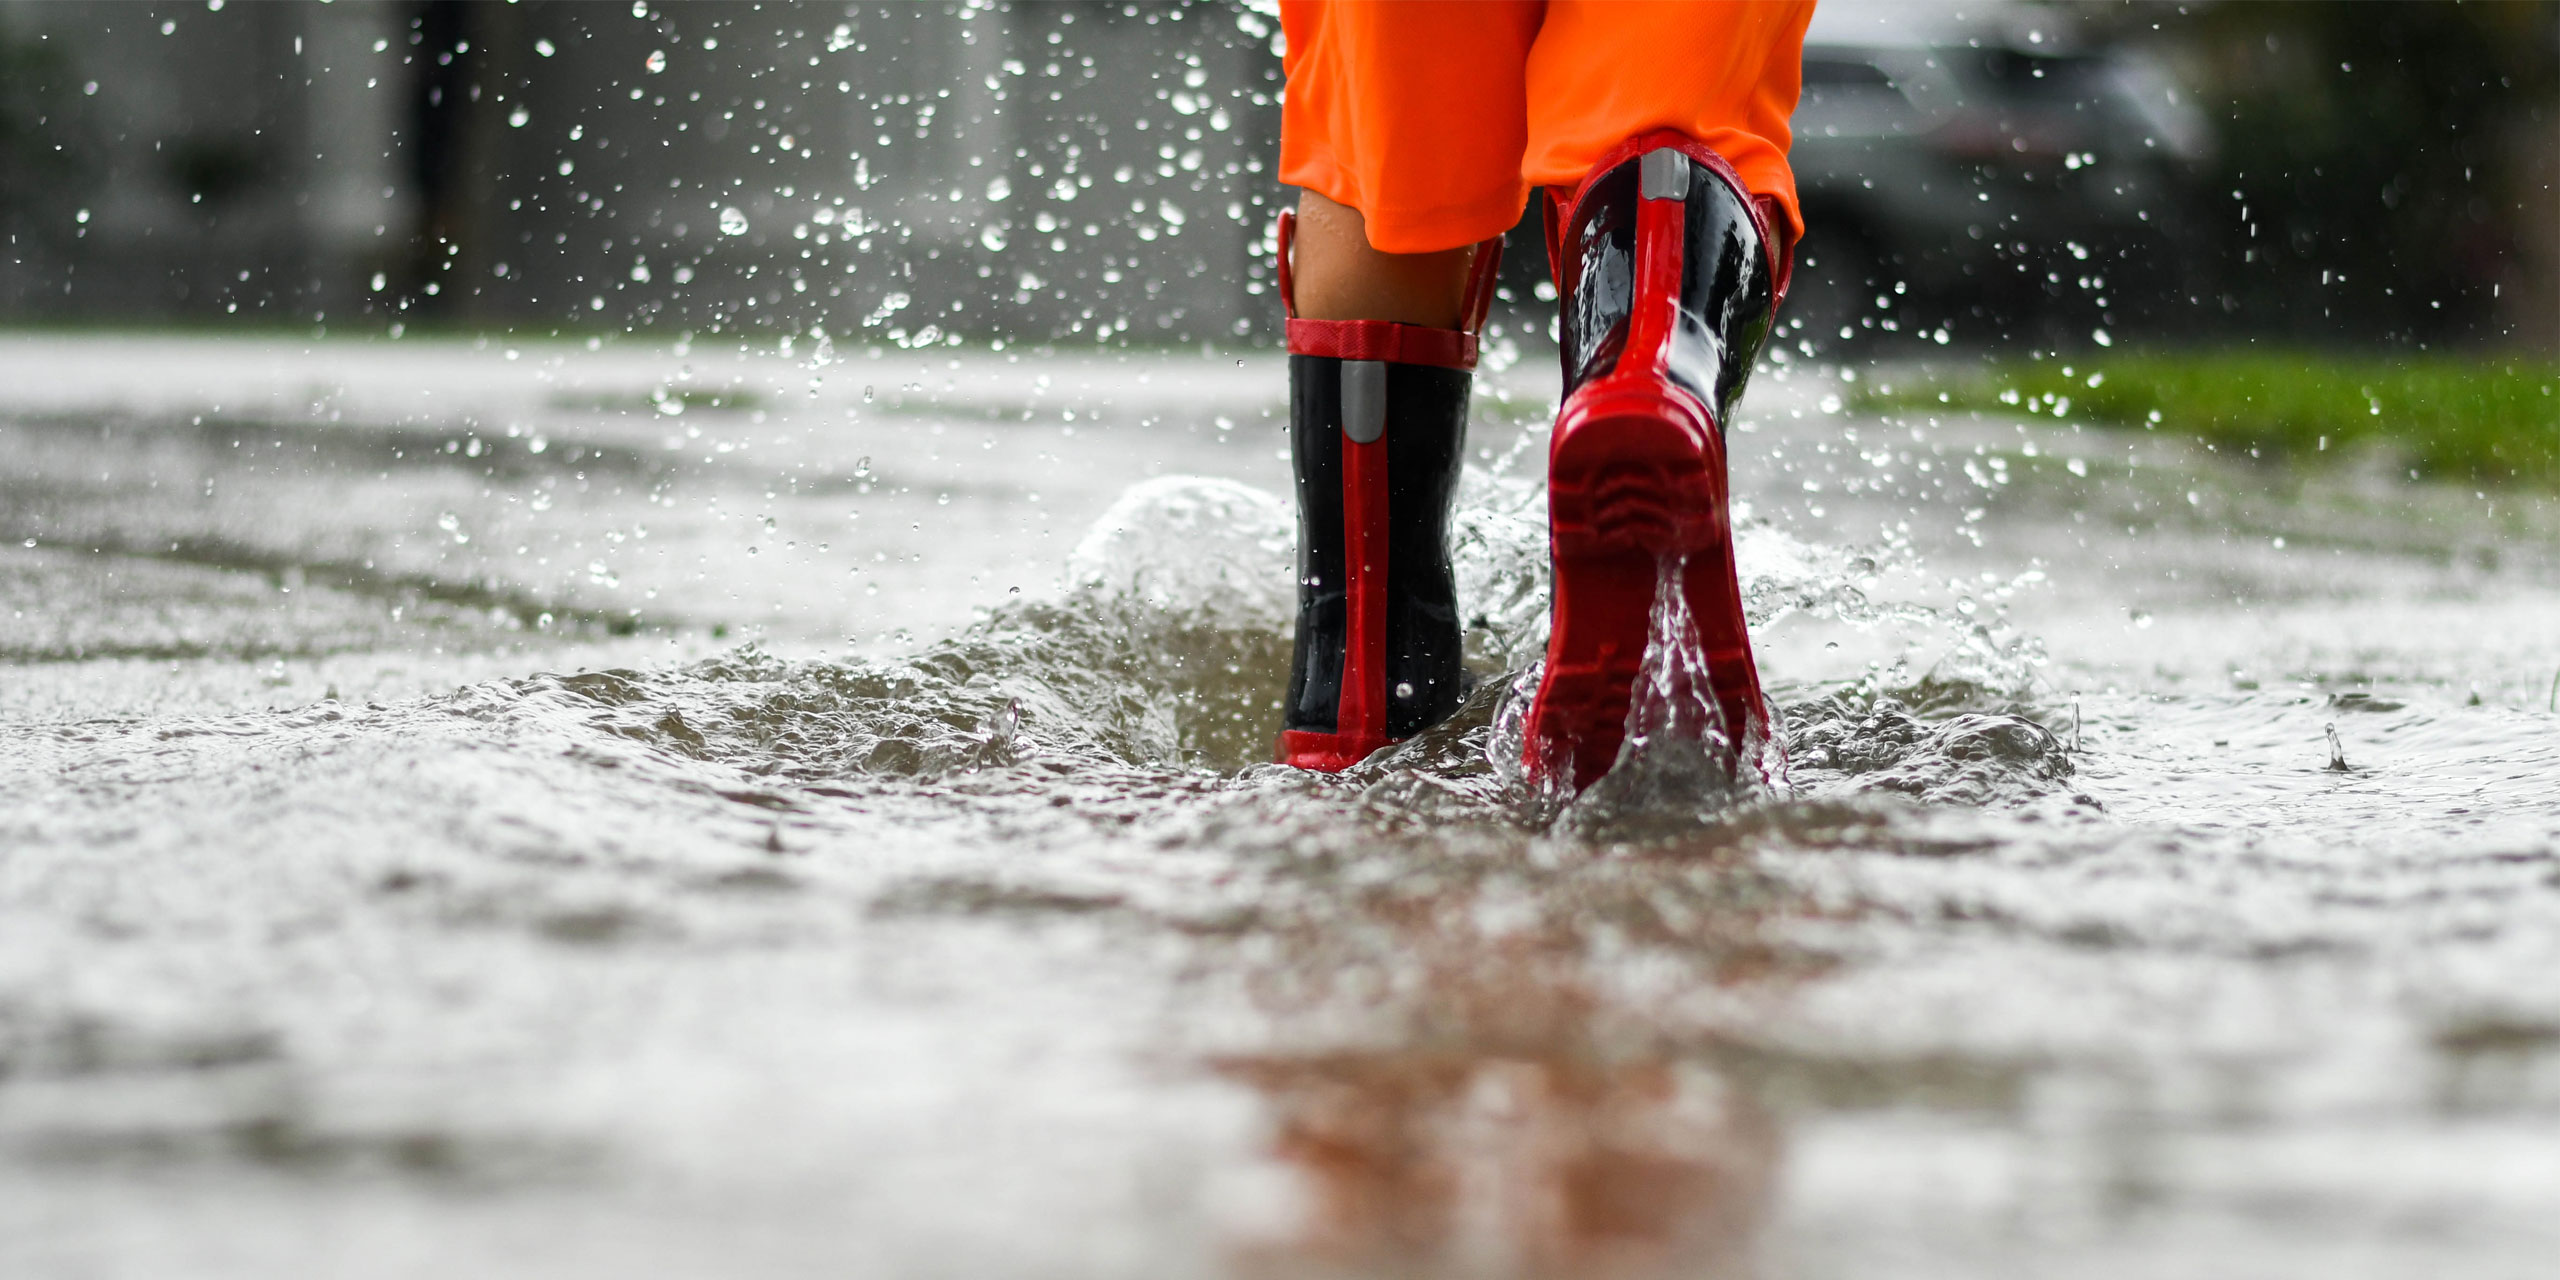 Rainboots In Rain Puddle; Courtesy of Joy Youell/Shutterstock.com